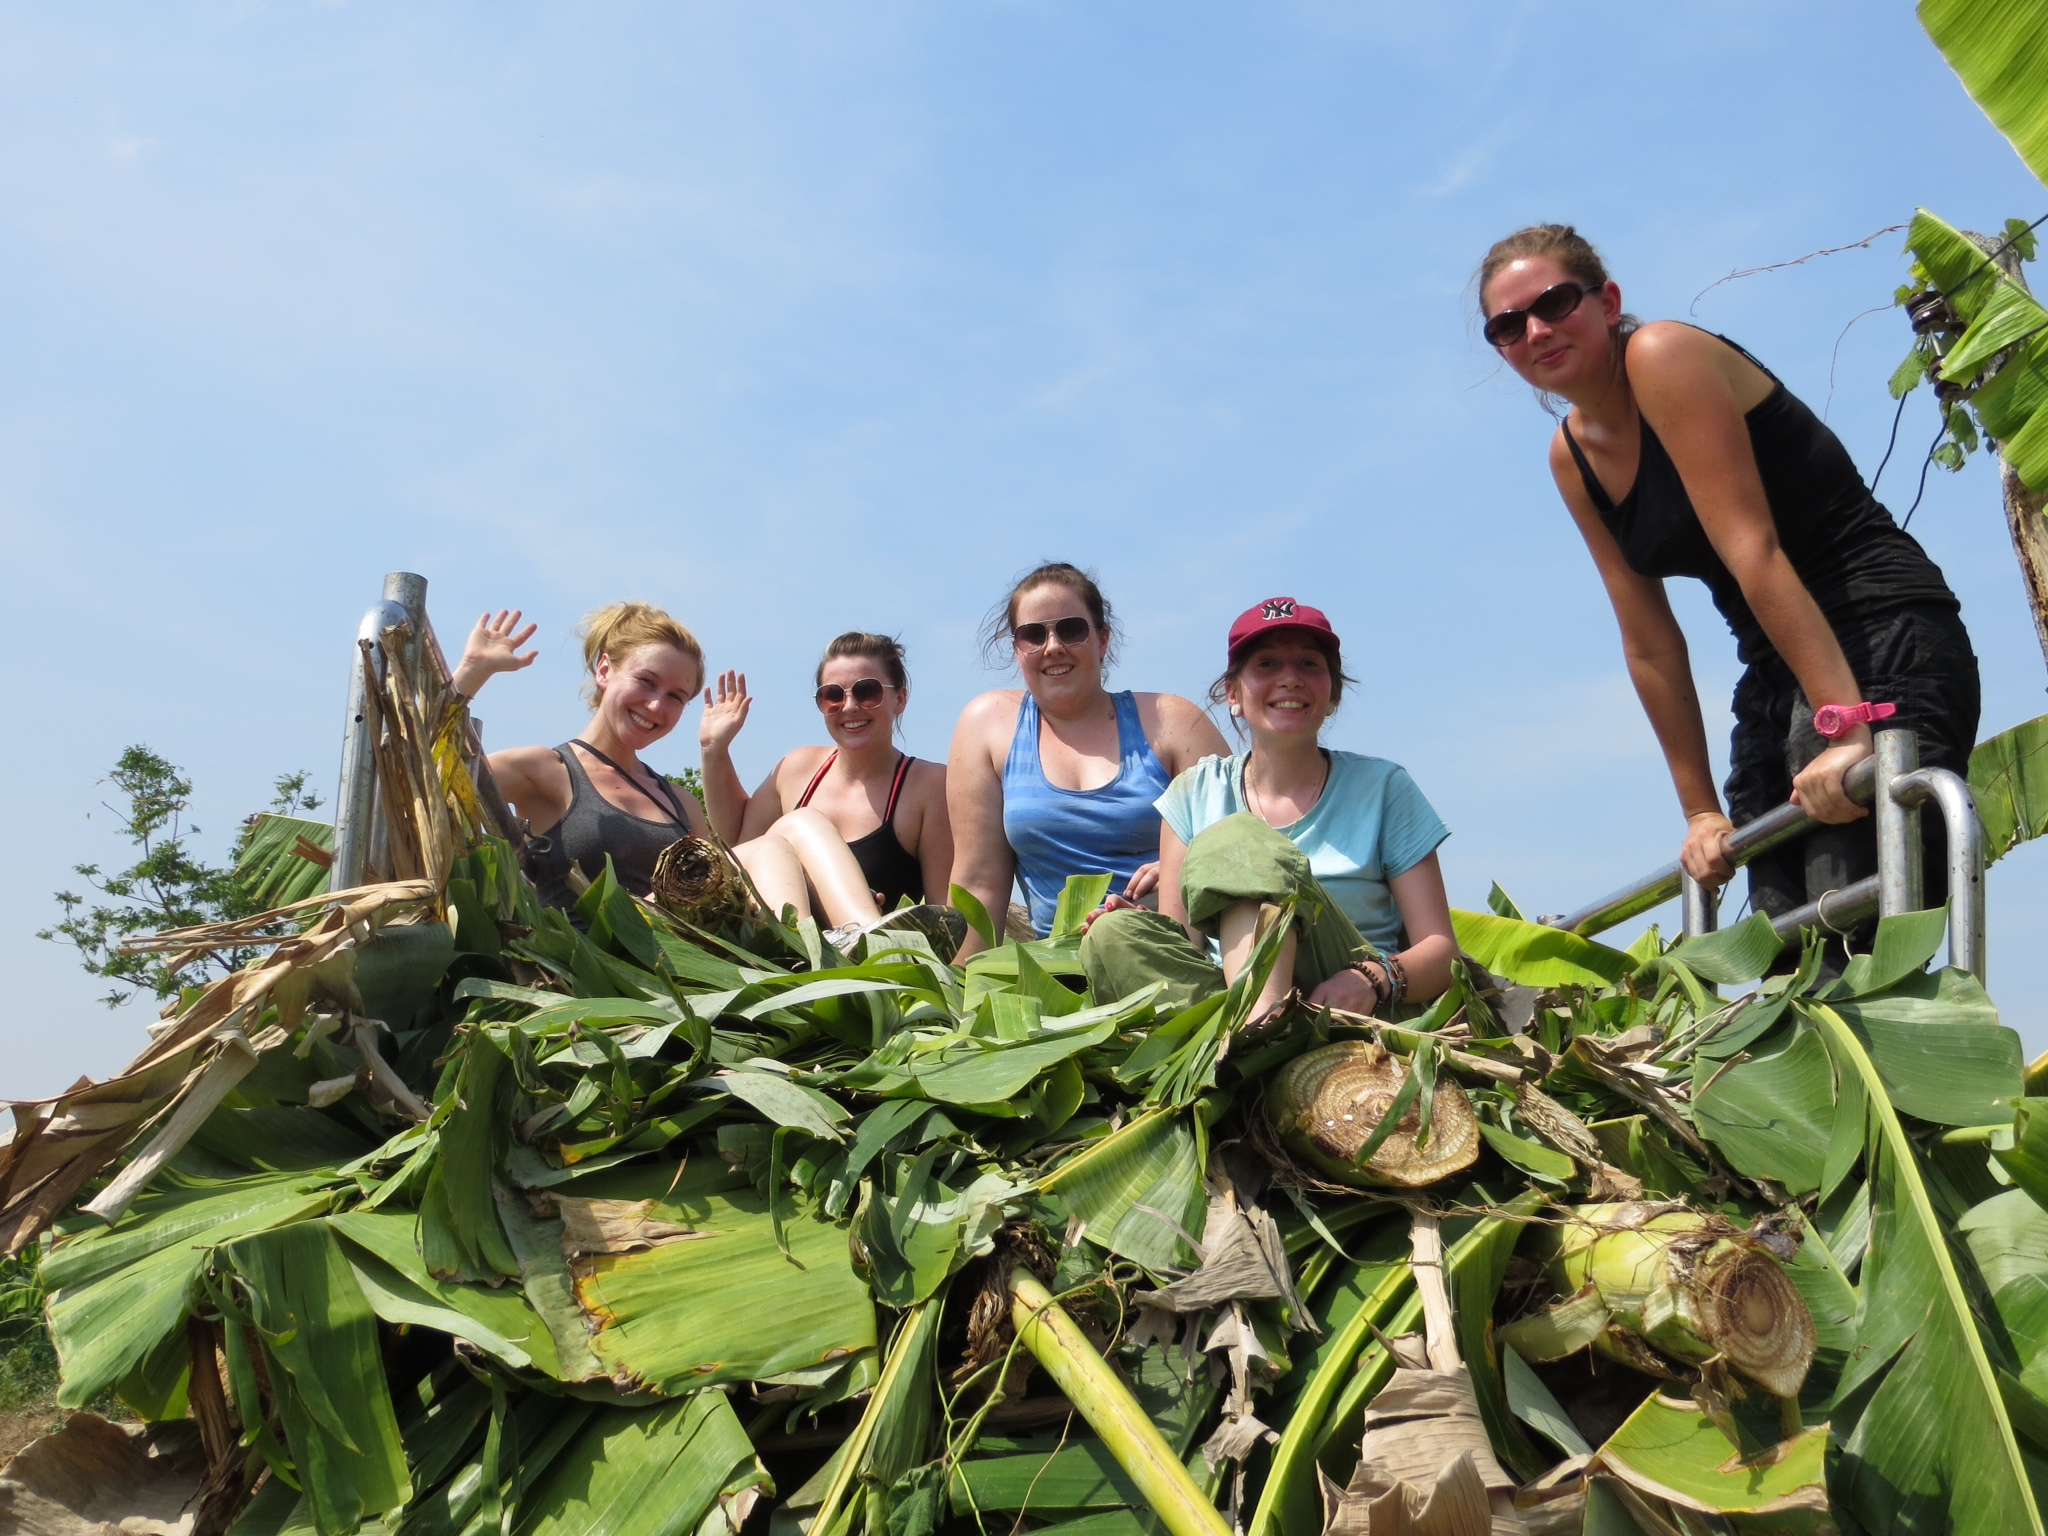 Our harvest group on top of the harvest truck filled with banana trees.jpeg